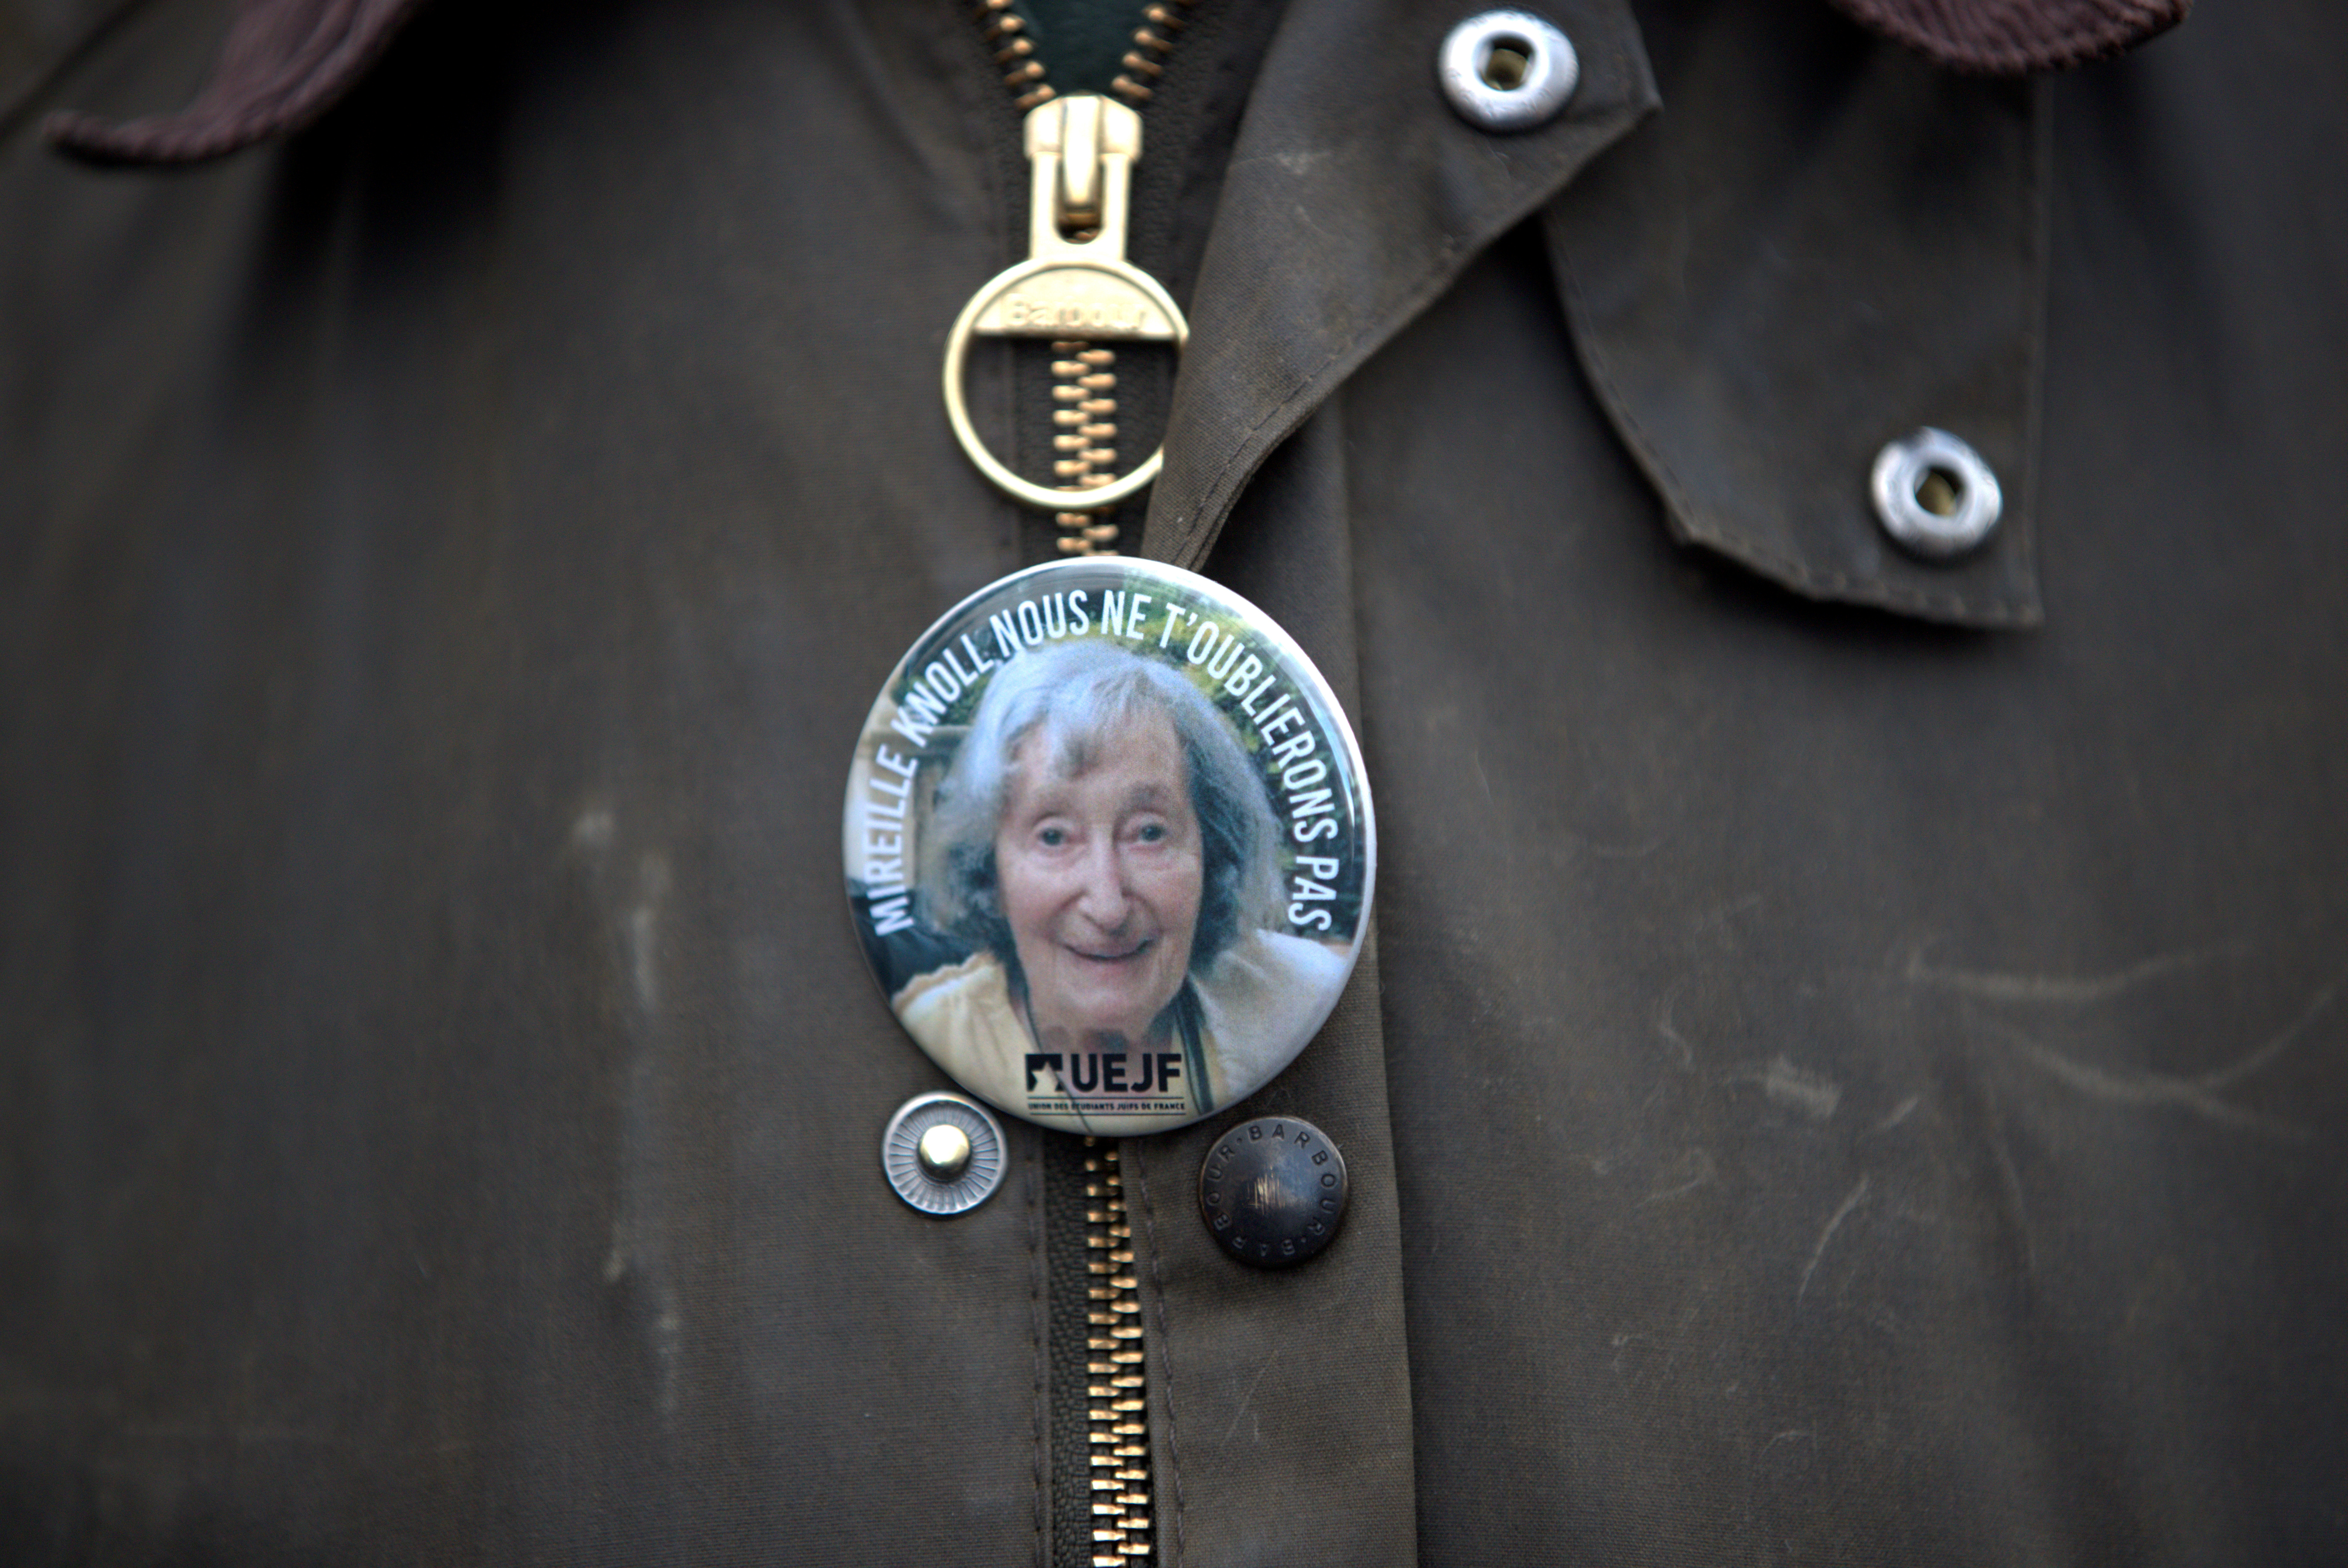 A pin with a portrait of Mireille Knoll is seen on a man's jacket during a gathering, in Paris, France, March 28, 2018. Mireille Knoll, 85, was found dead with 11 stab wounds at her apartment in a working-class district of Paris on Friday. The apartment was set ablaze after the attack and her body badly burnt. Police suspect that Knoll's Jewish religion was a motive for the killing. (REUTERS/Gonzalo Fuentes)